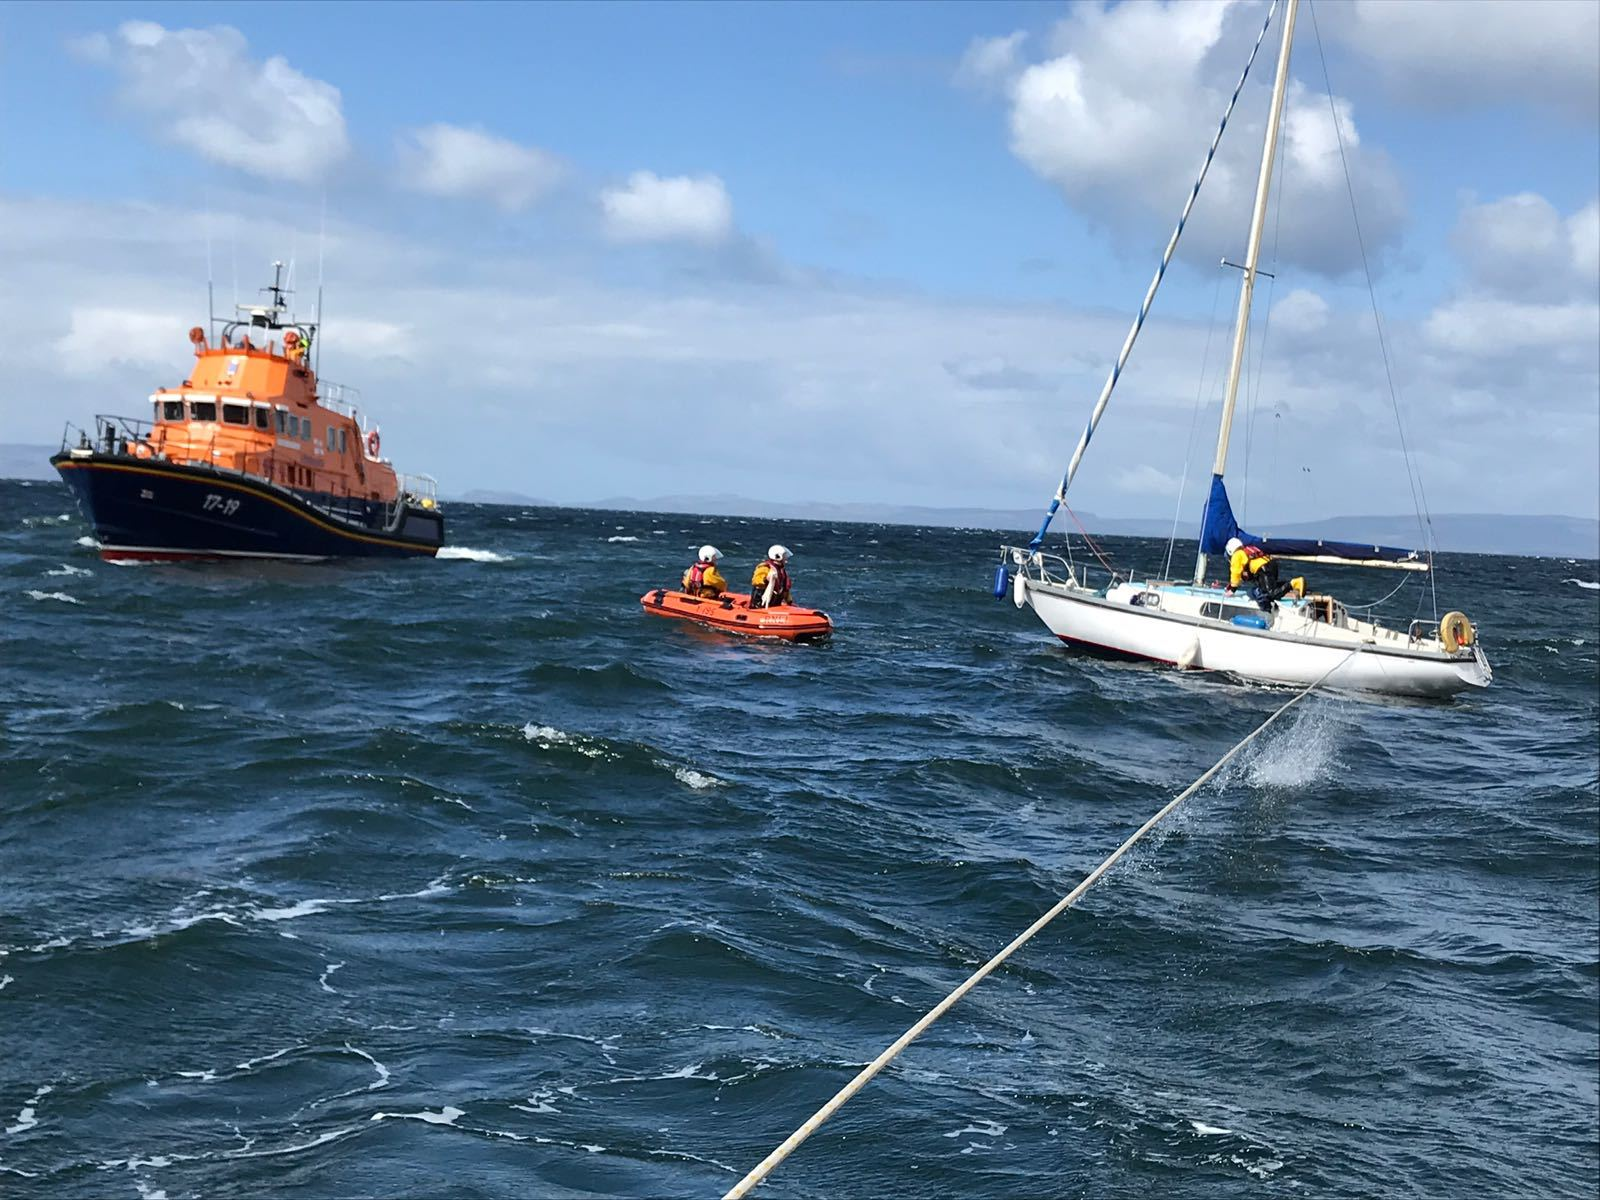 Arran RNLI help out with rescue